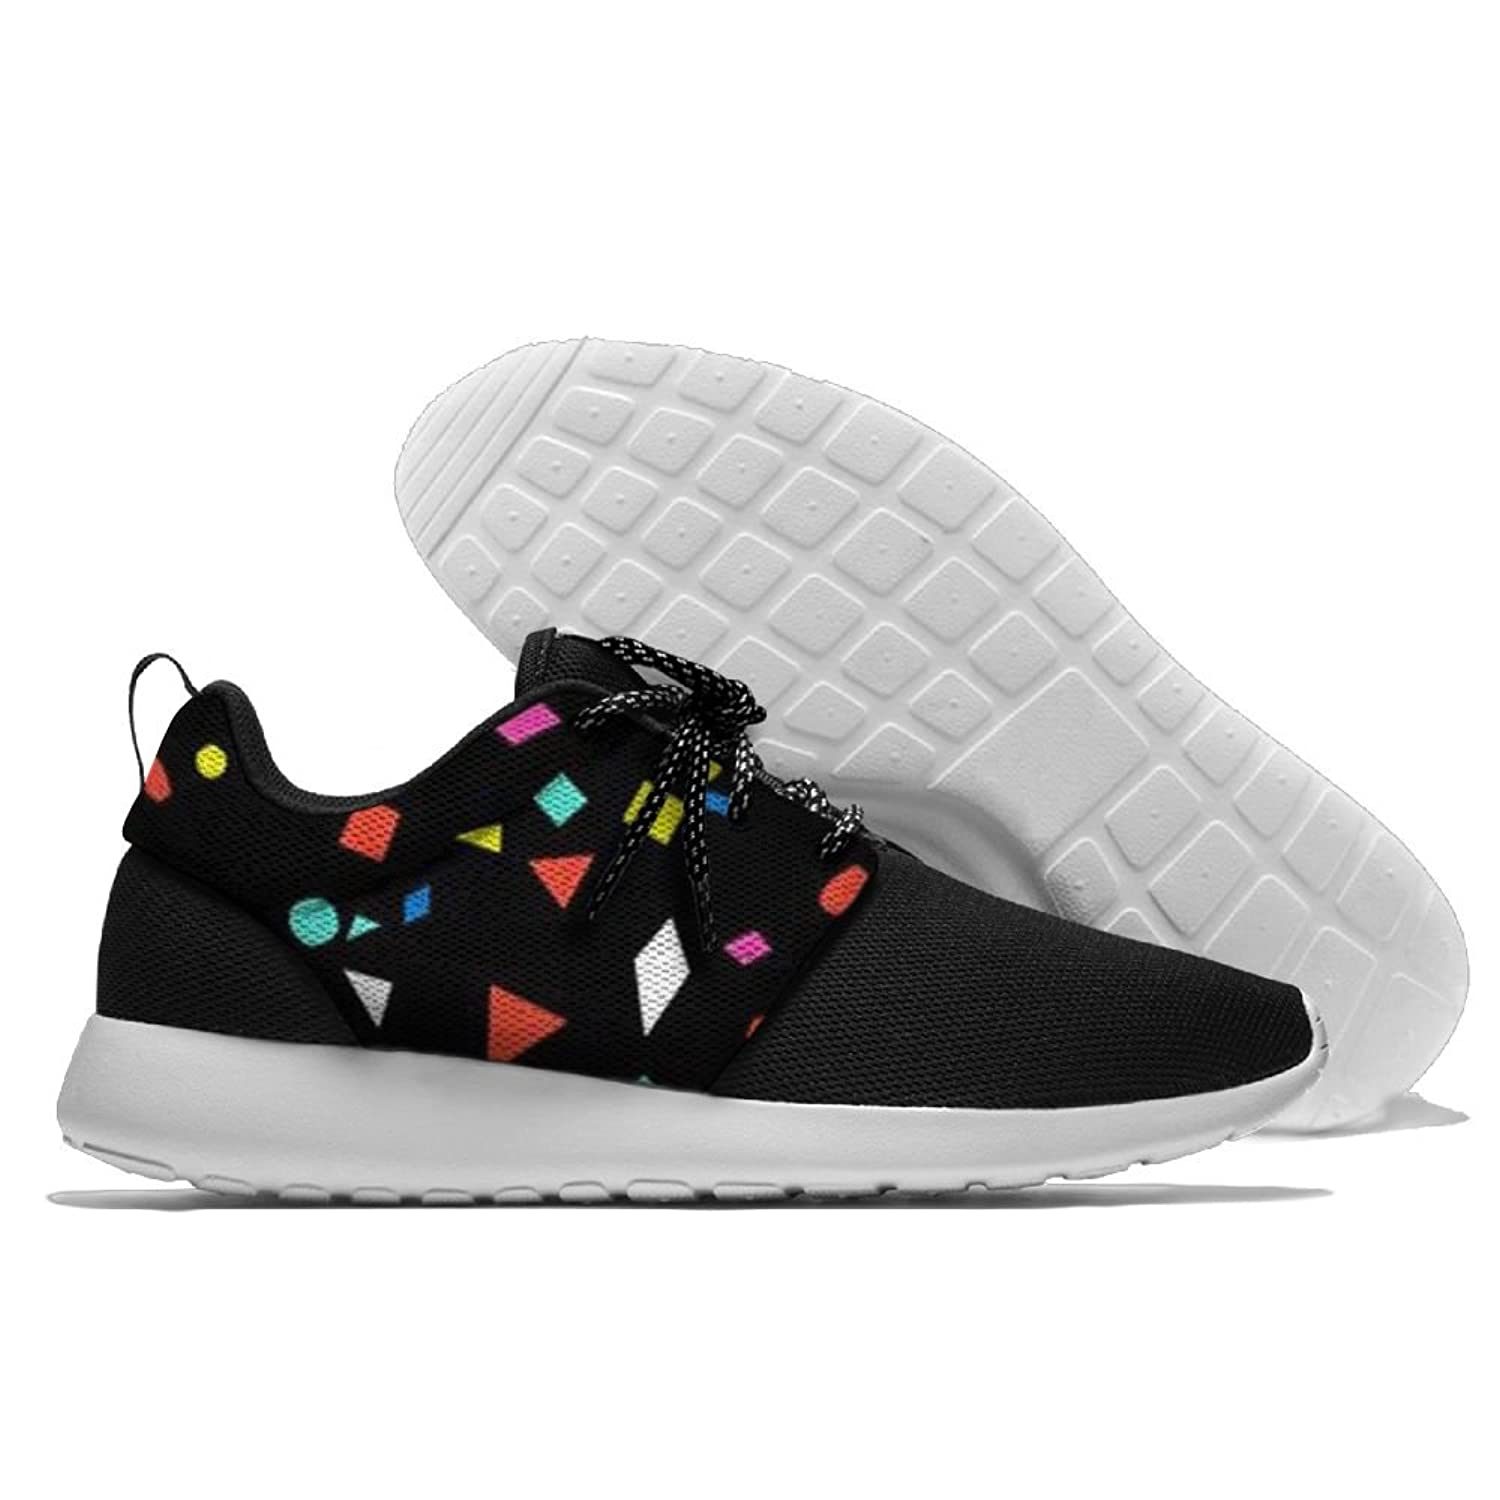 Men's Running Geometric Figure Shoes Fashion Breathable Sneakers Mesh Soft Sole Casual Athletic Lightweight